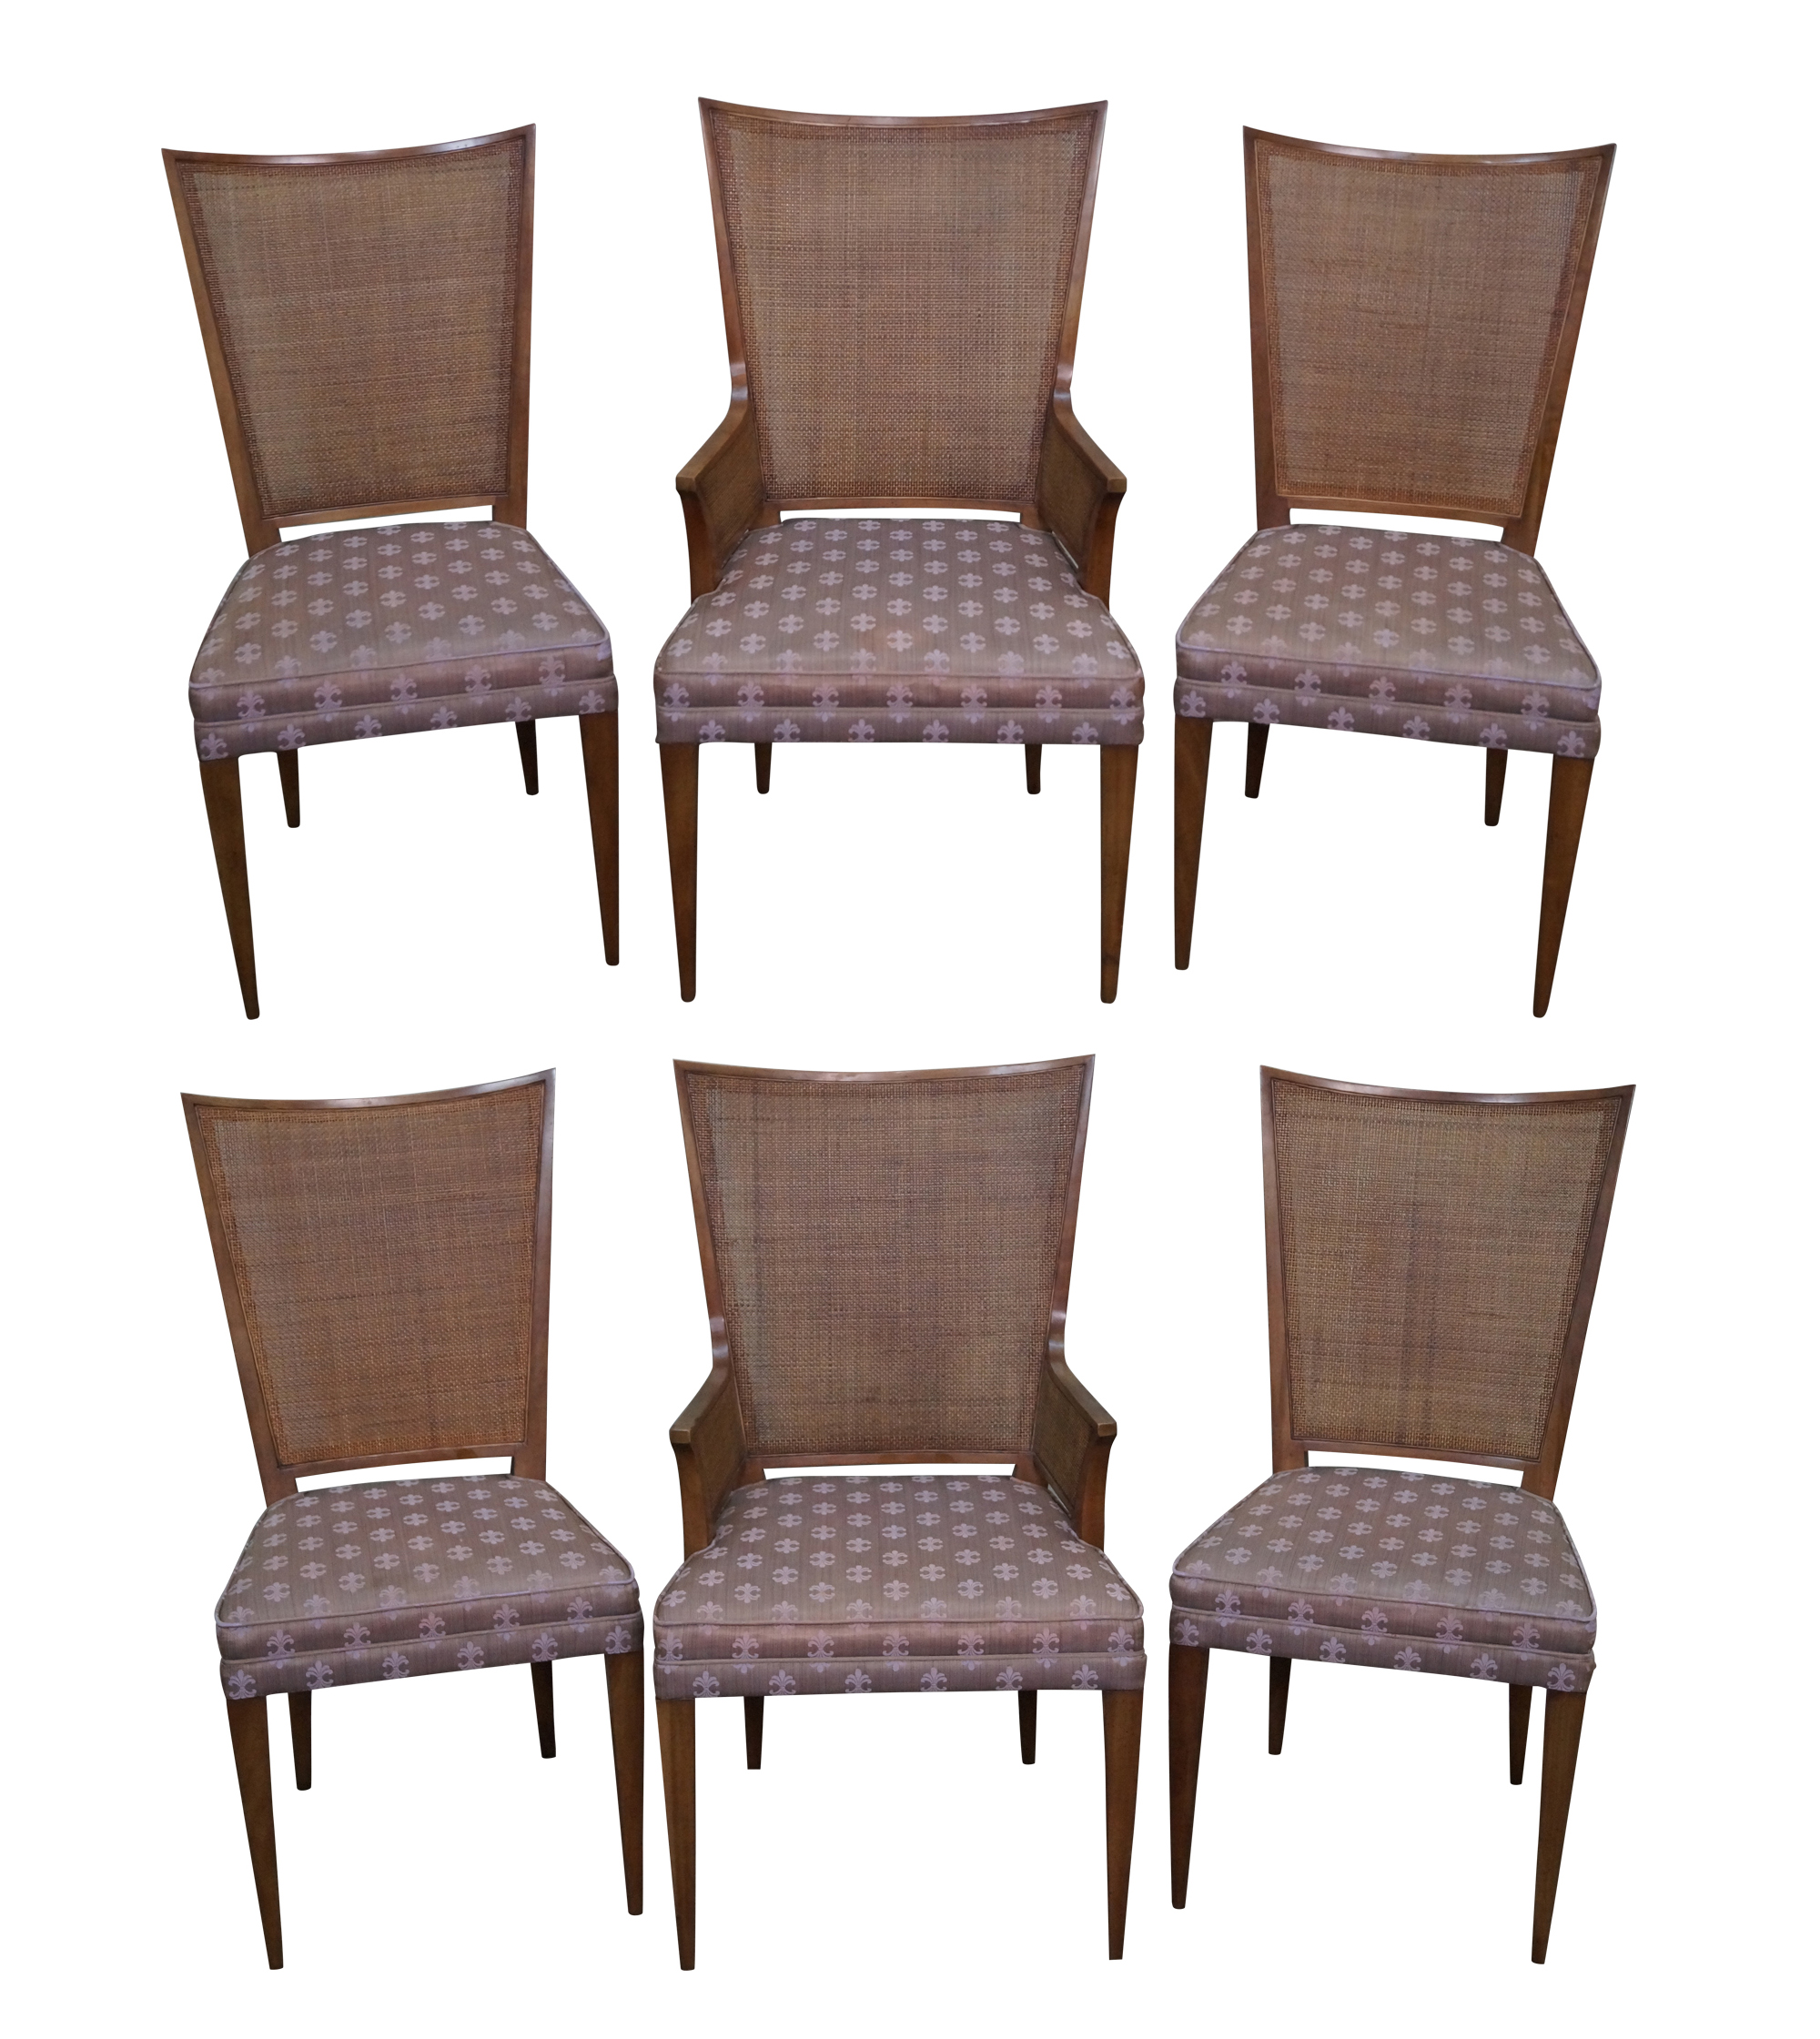 Widdi b Mid Century Cane Back Dining Chairs 6